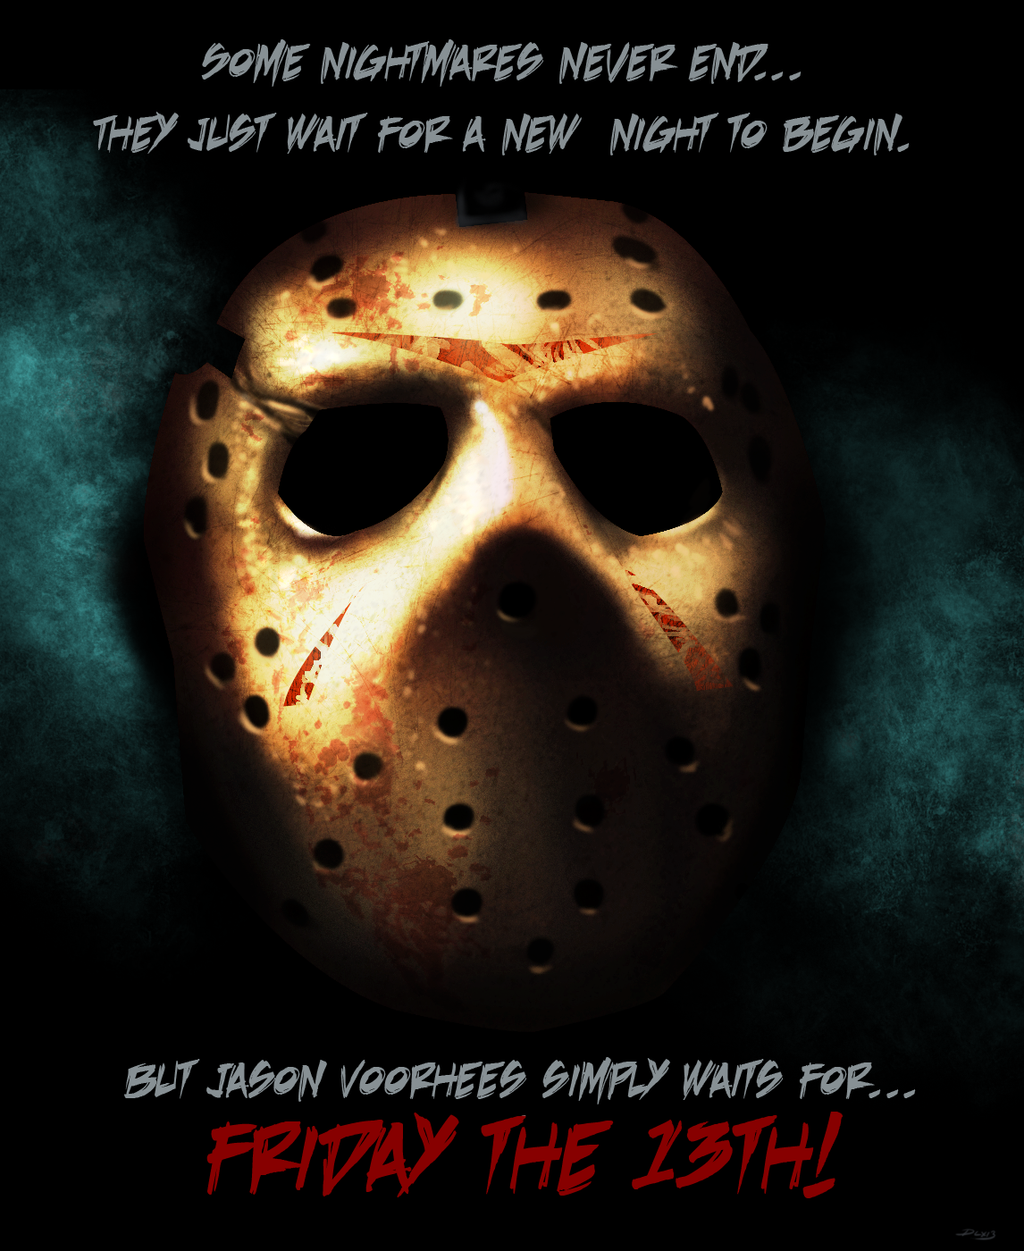 Jason by dwaynebiddixart